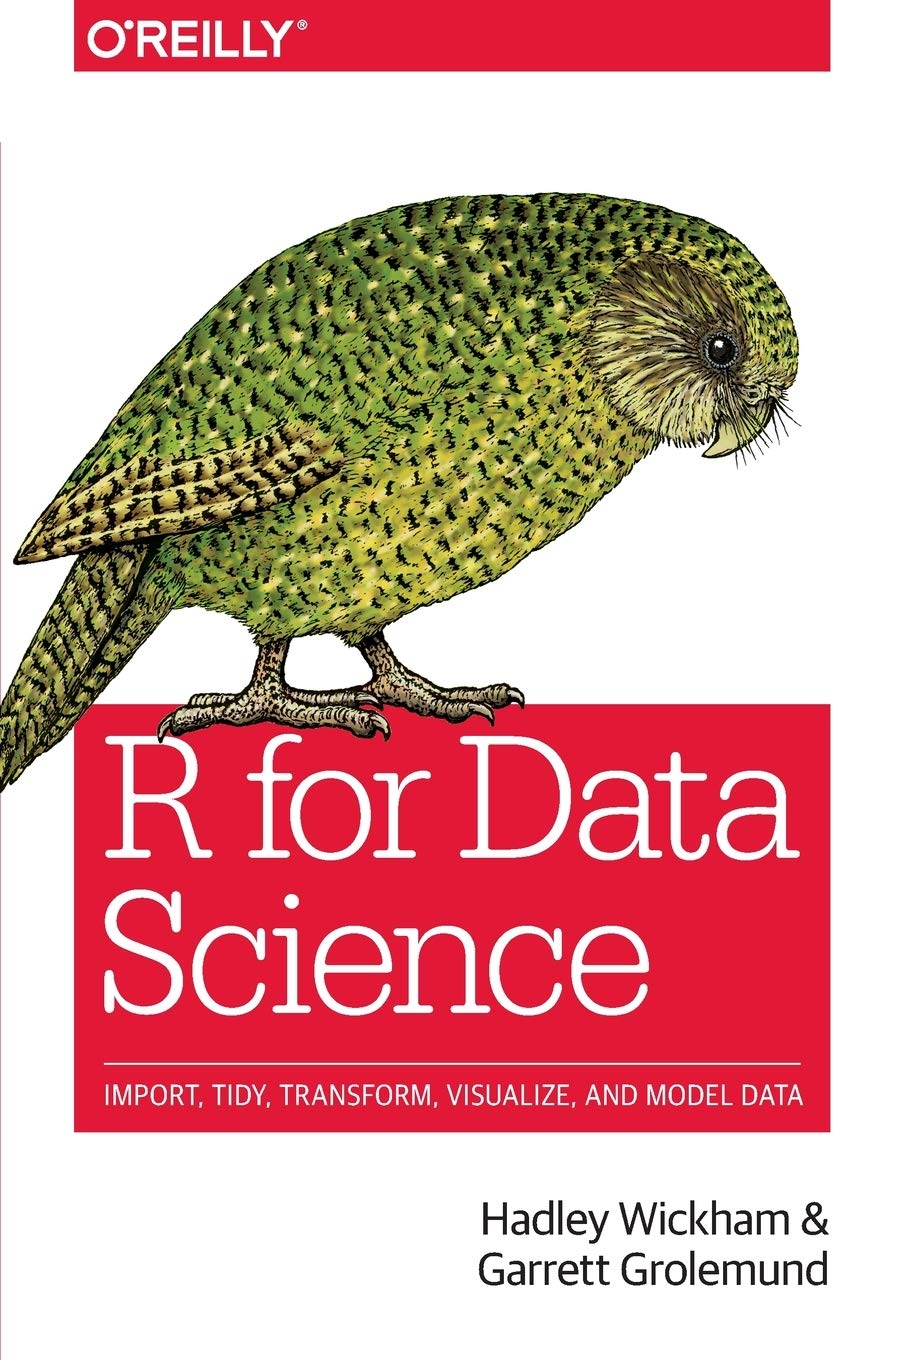 R for Data Science: Import, Tidy, Transform, Visualize, and Model Data by O Reilly Media